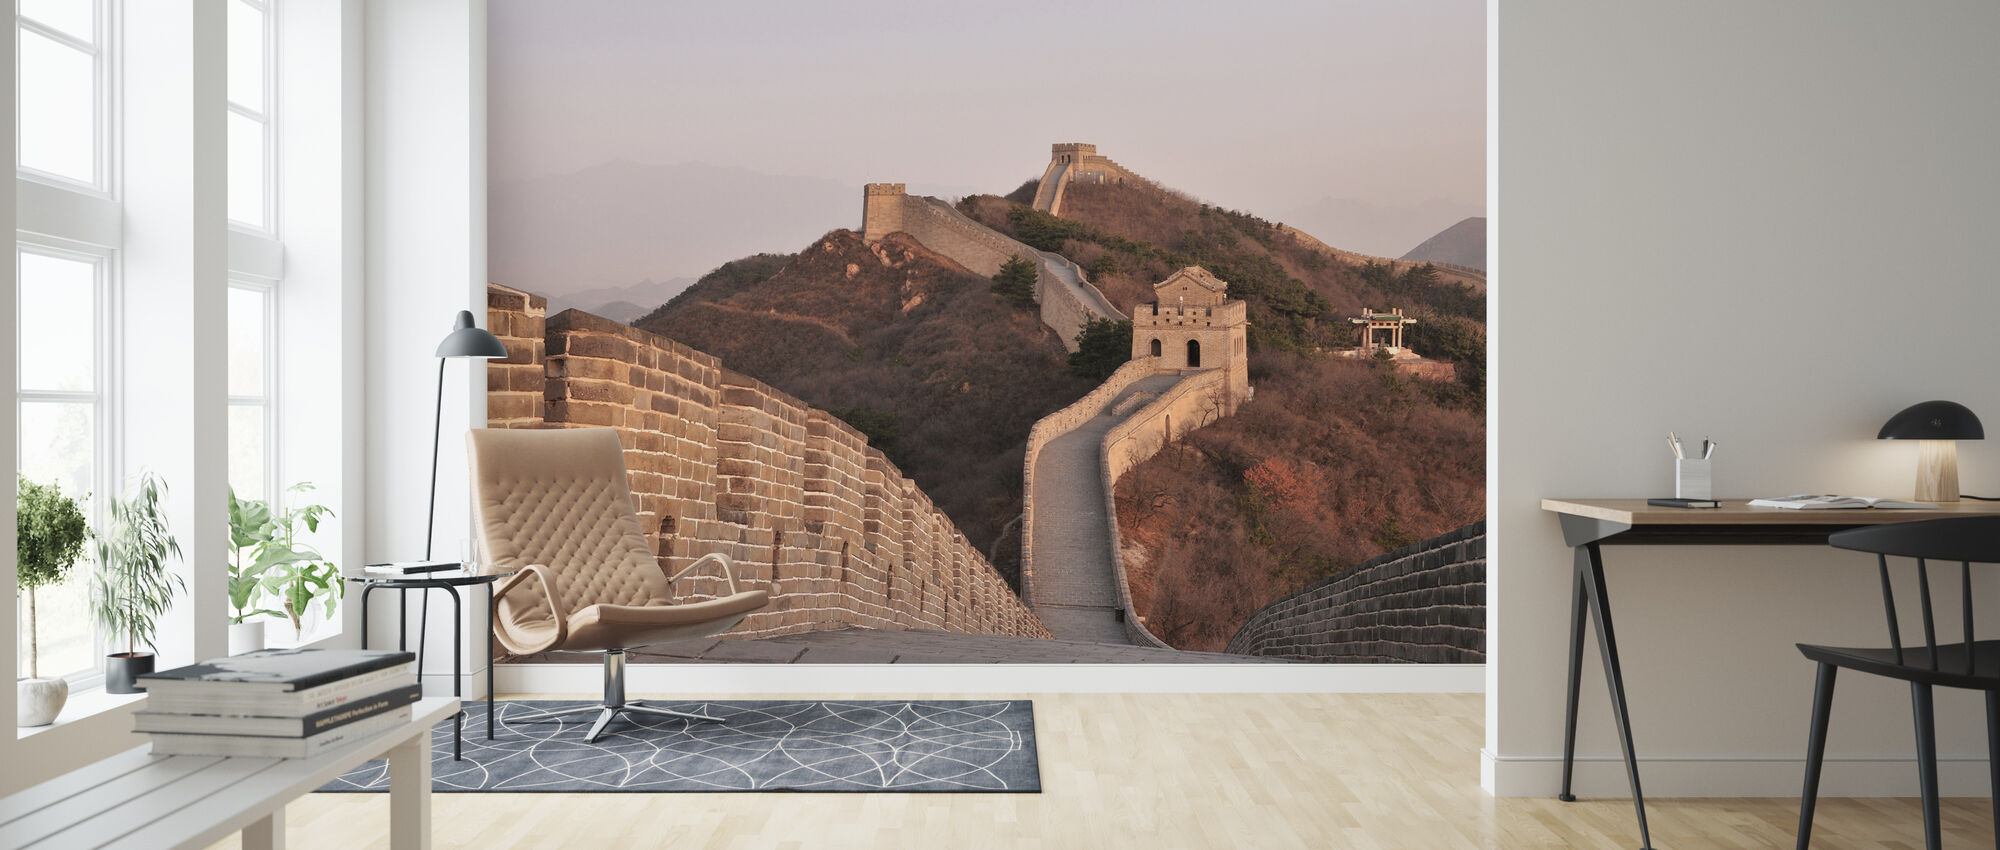 On top of the Great Wall of China - Wallpaper - Living Room